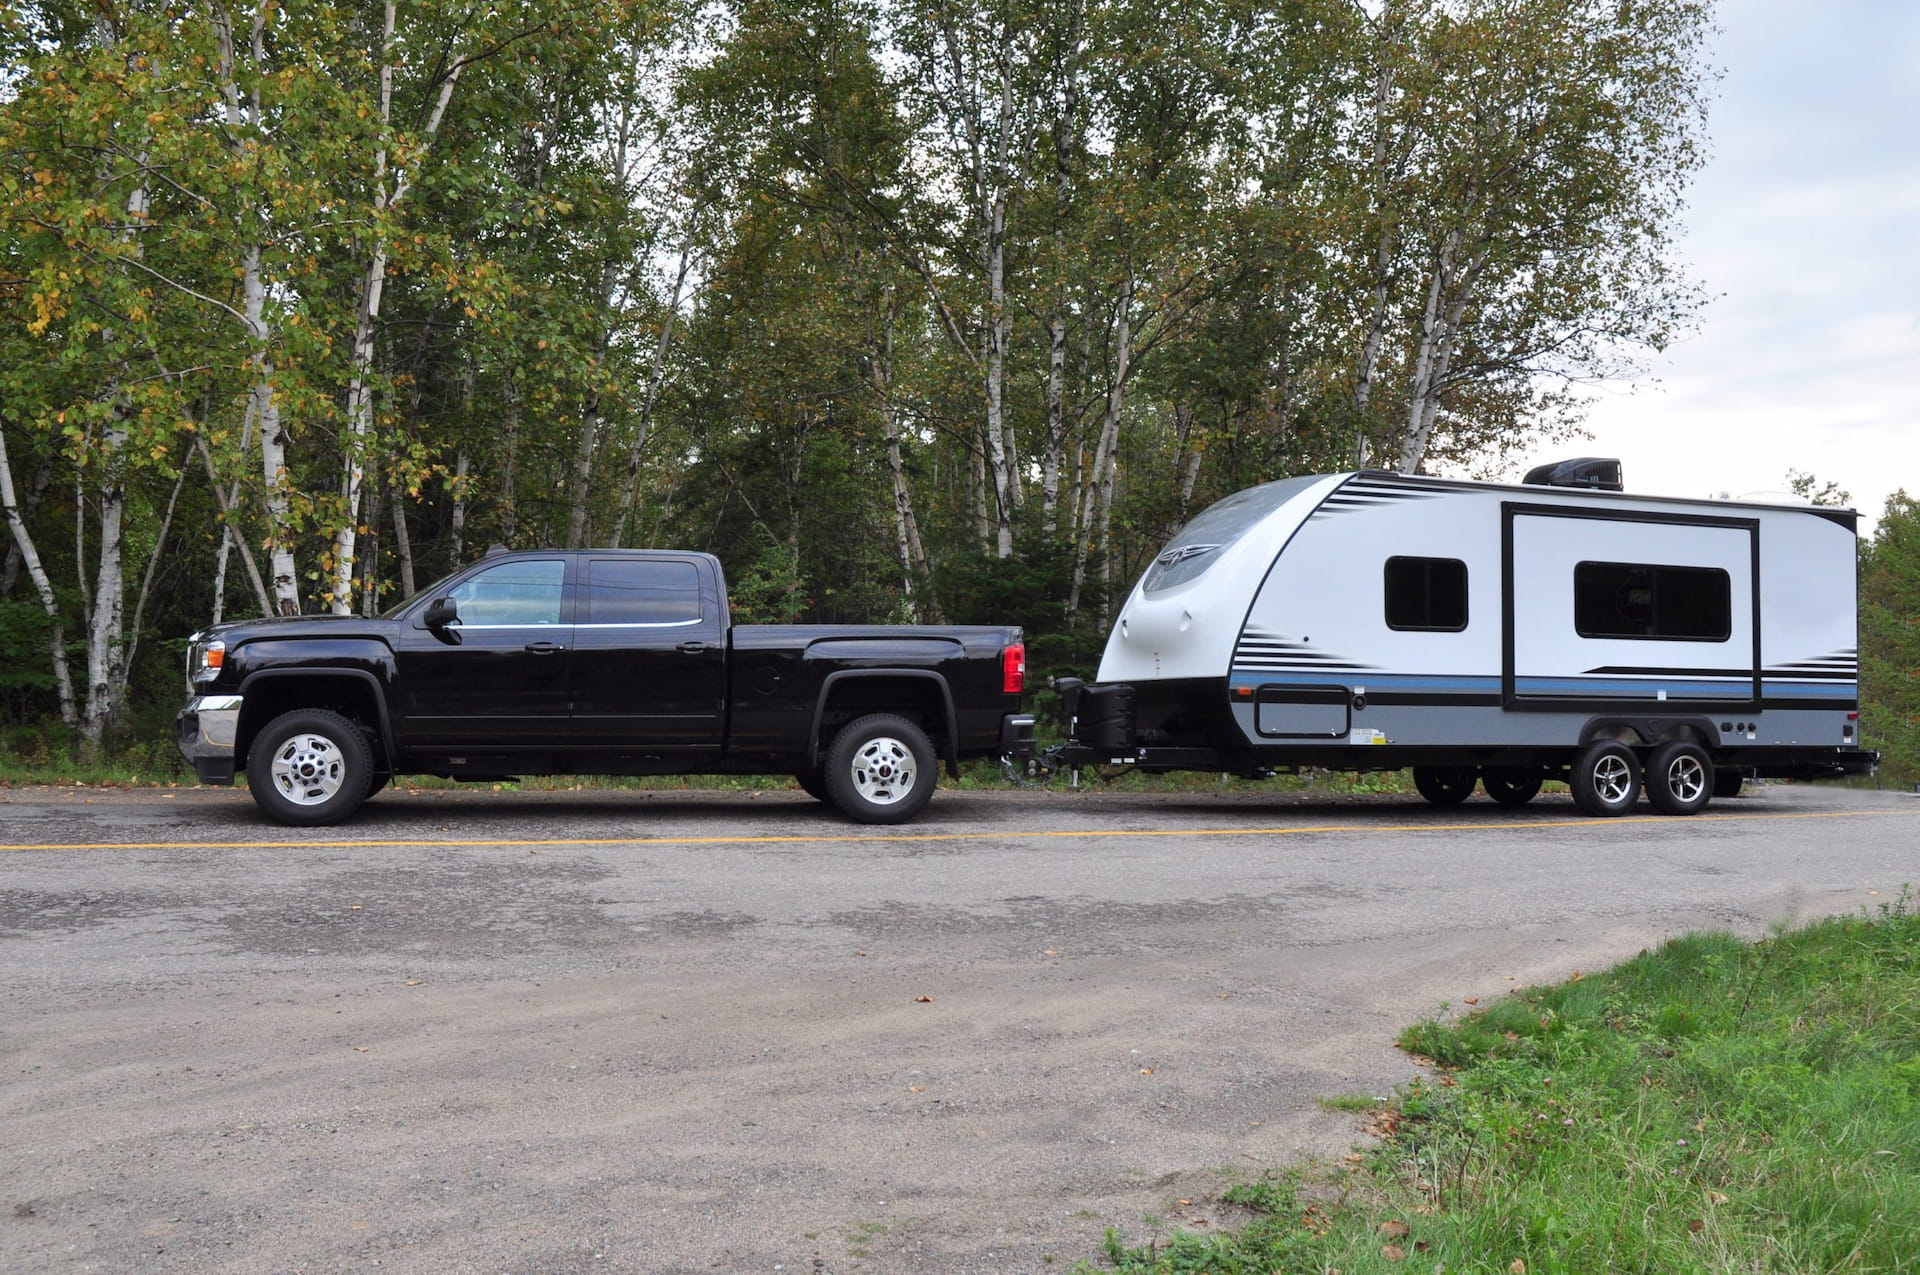 Black GMC truck hitched to a small grey and white travel trailer. The rig is parked on a roughly paved campground road with green deciduous forest in the background.